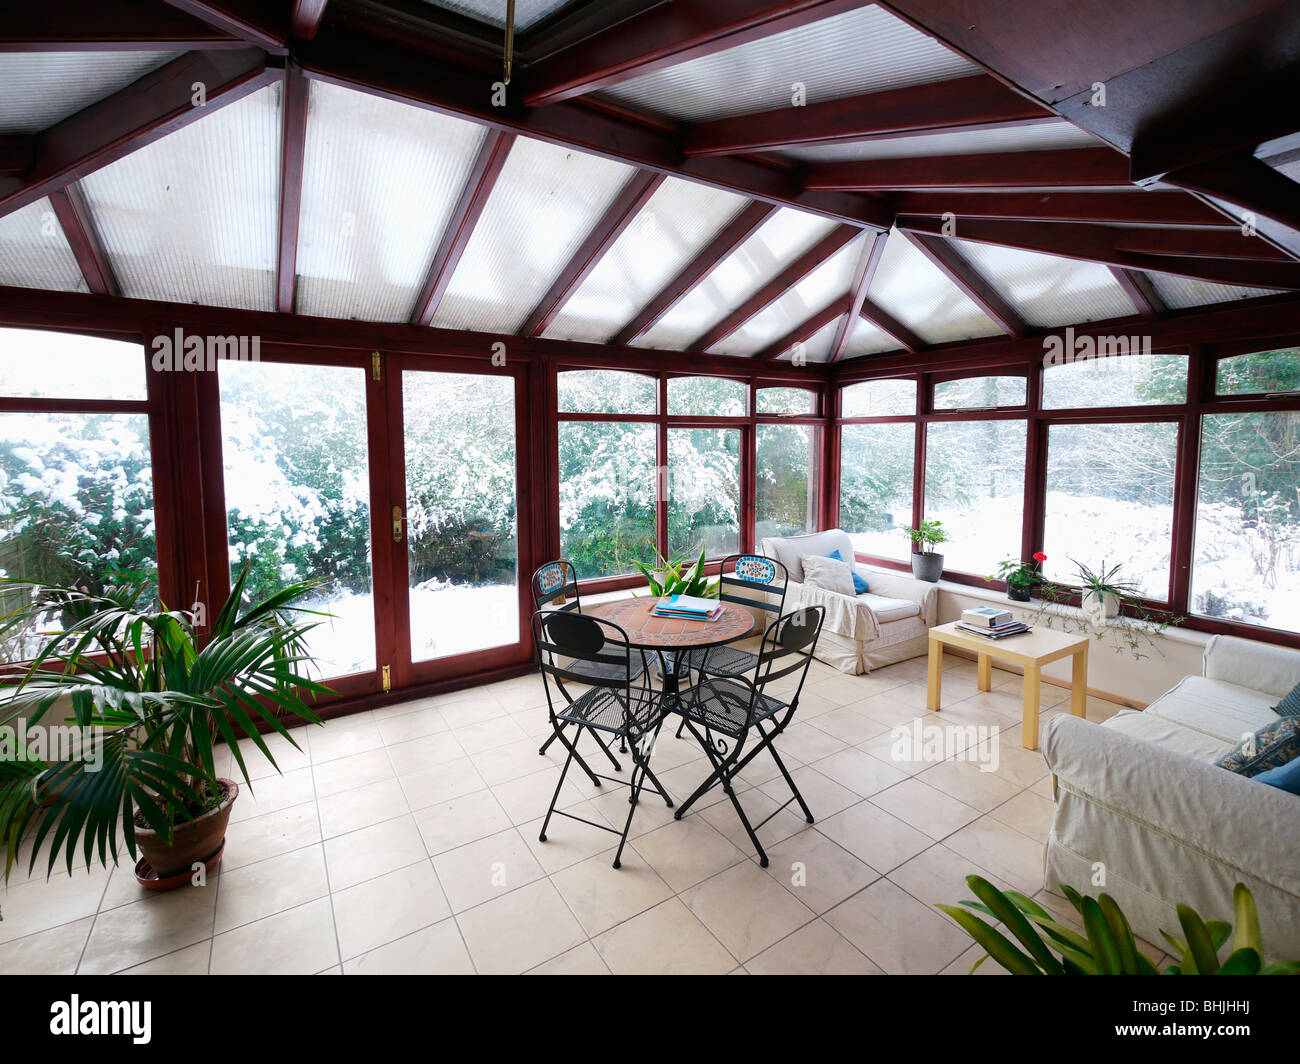 conservatory interior snow conservatories indoors - Stock Image